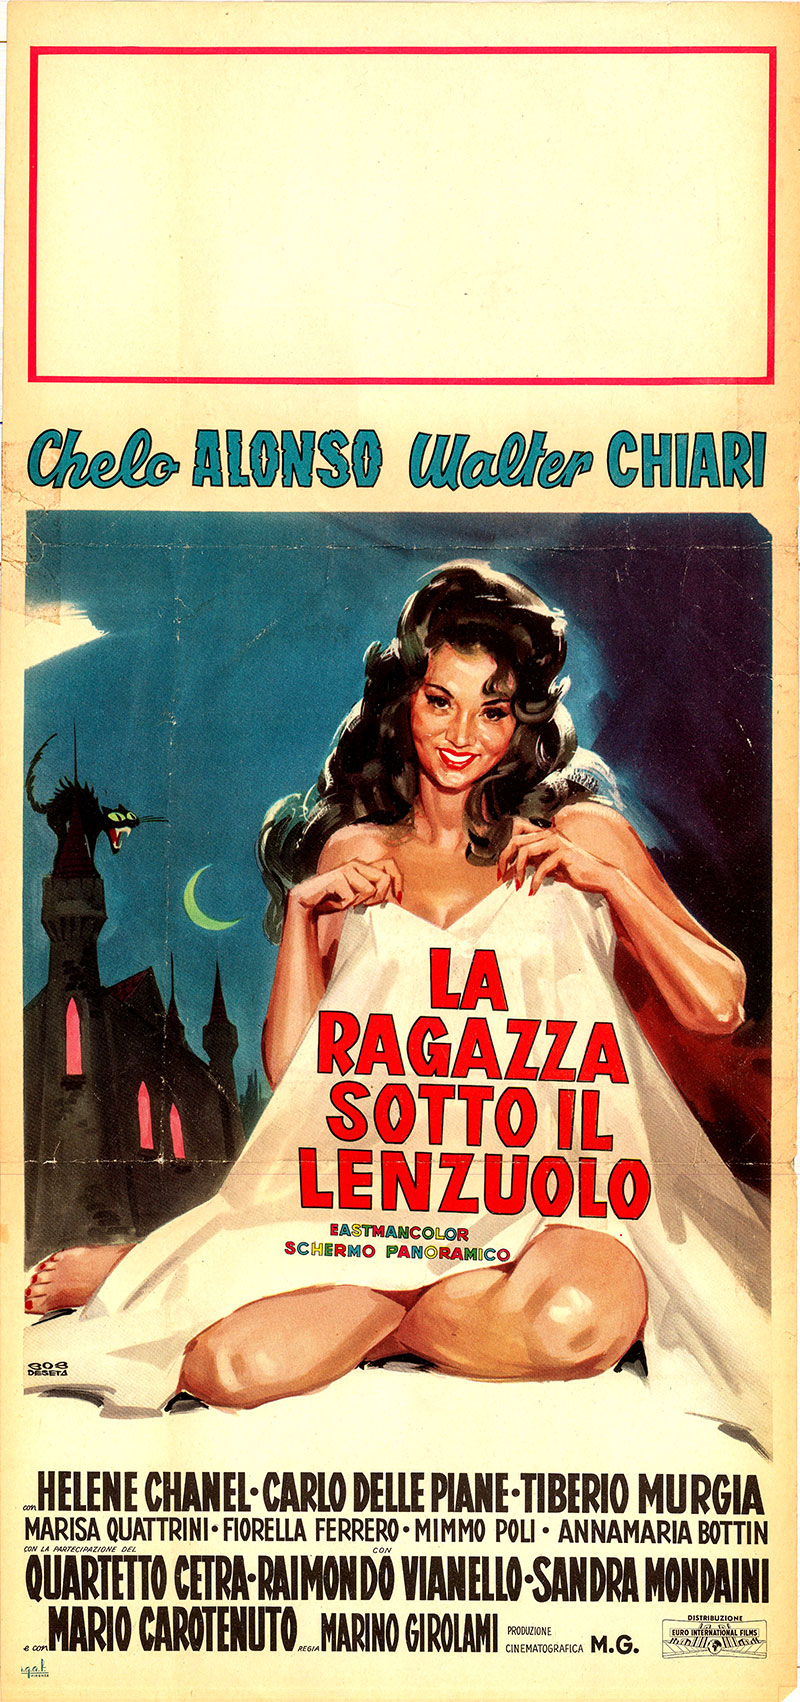 Pictured is an Italian locandina poster designed by Enrico De Seta for the 1961 Martino Giorlami film Girl under the Sheet starring Chelo Alonso as Maria Celeste Cortez d'Aragona.